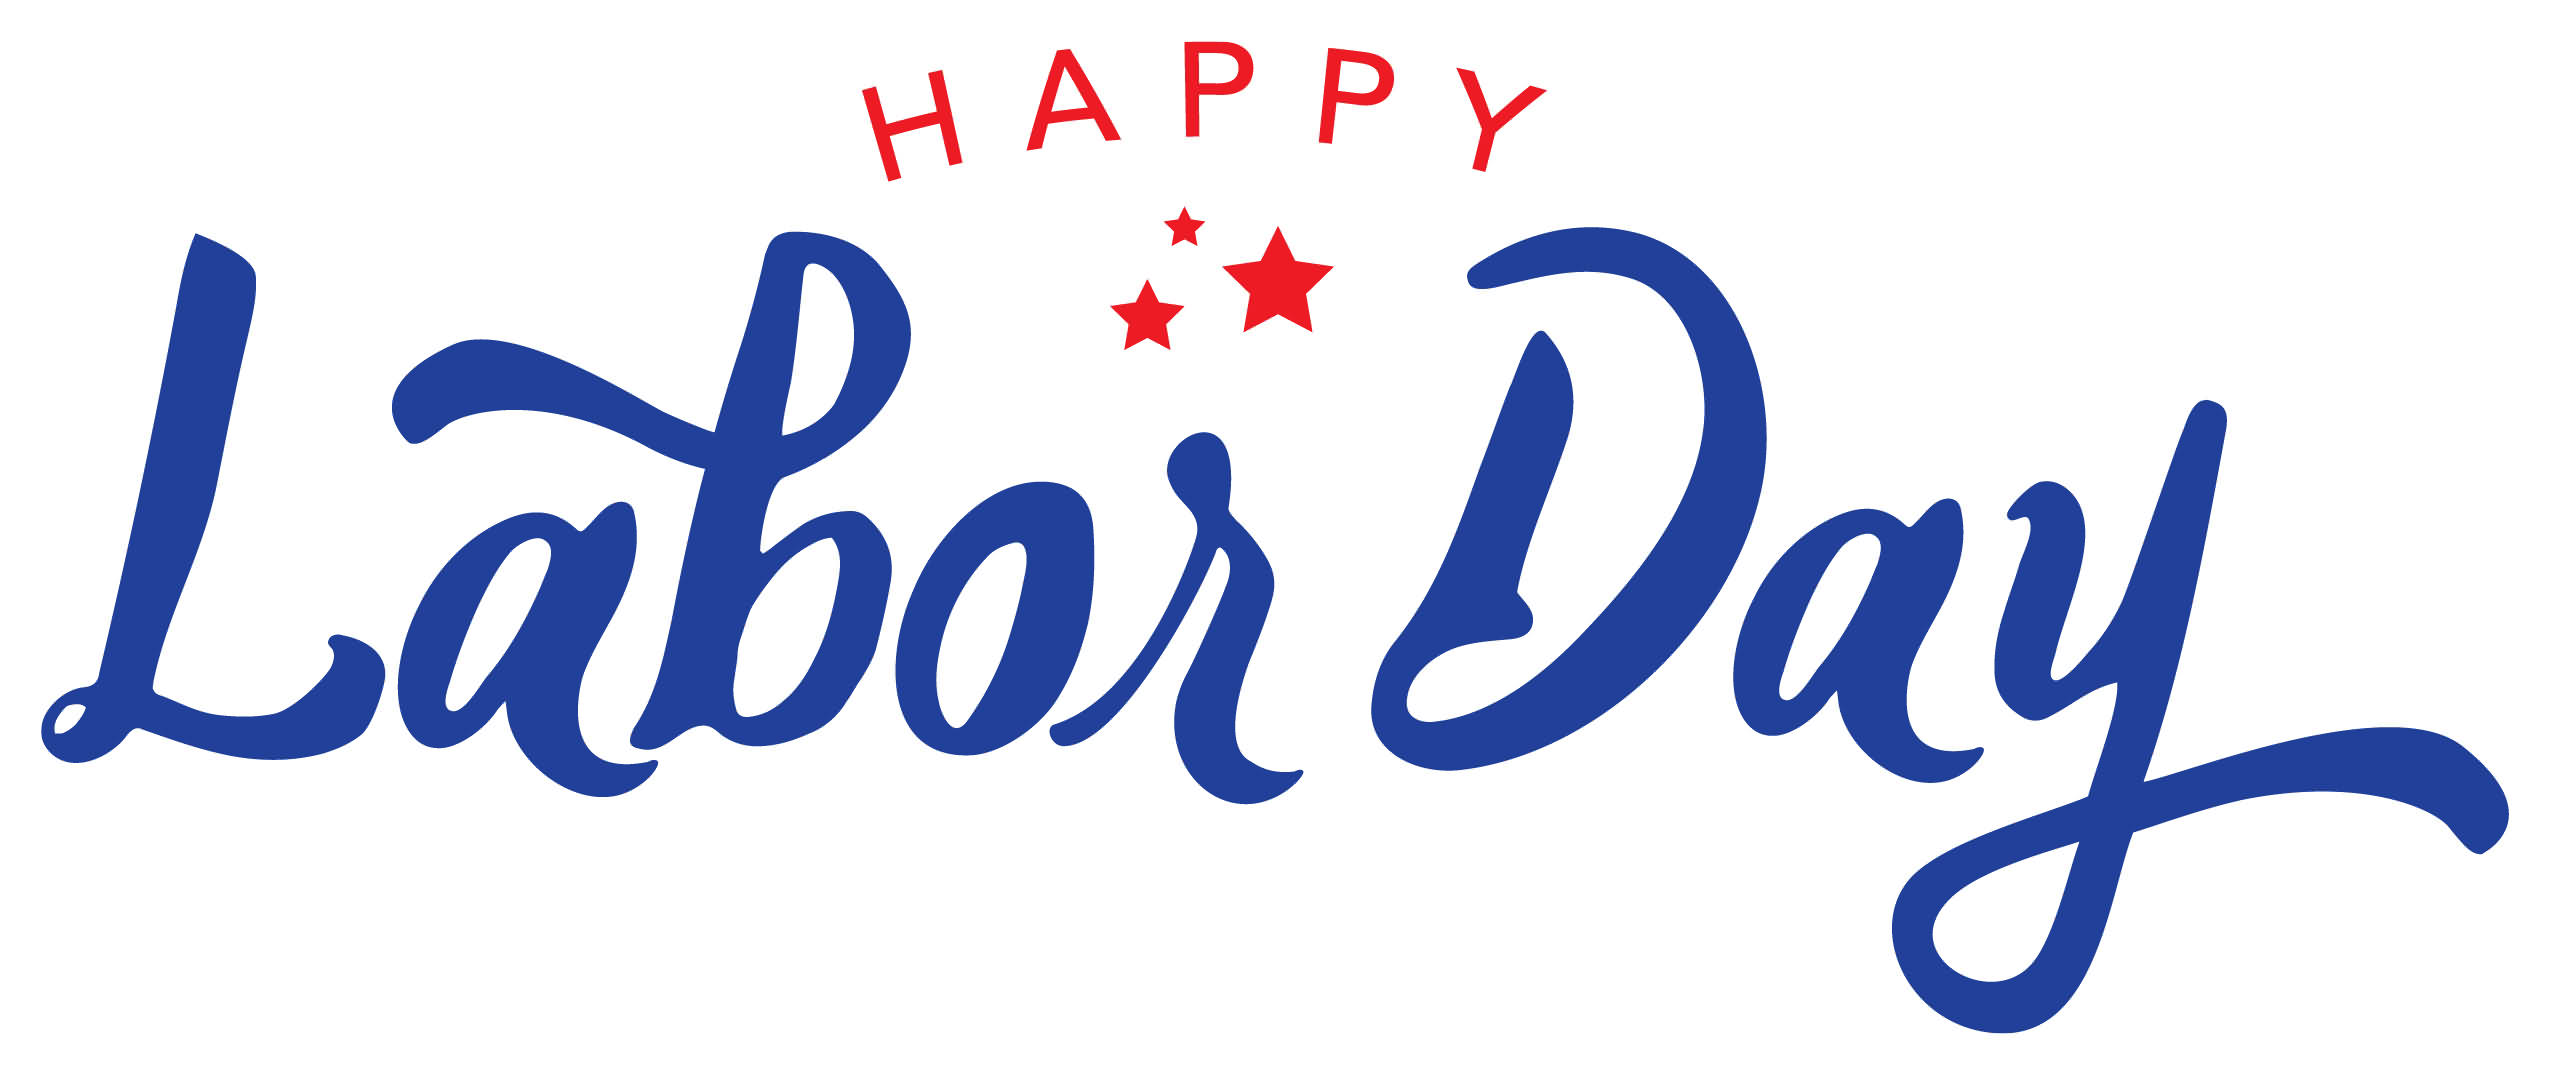 7 September 2020 Happy Labor Day Png